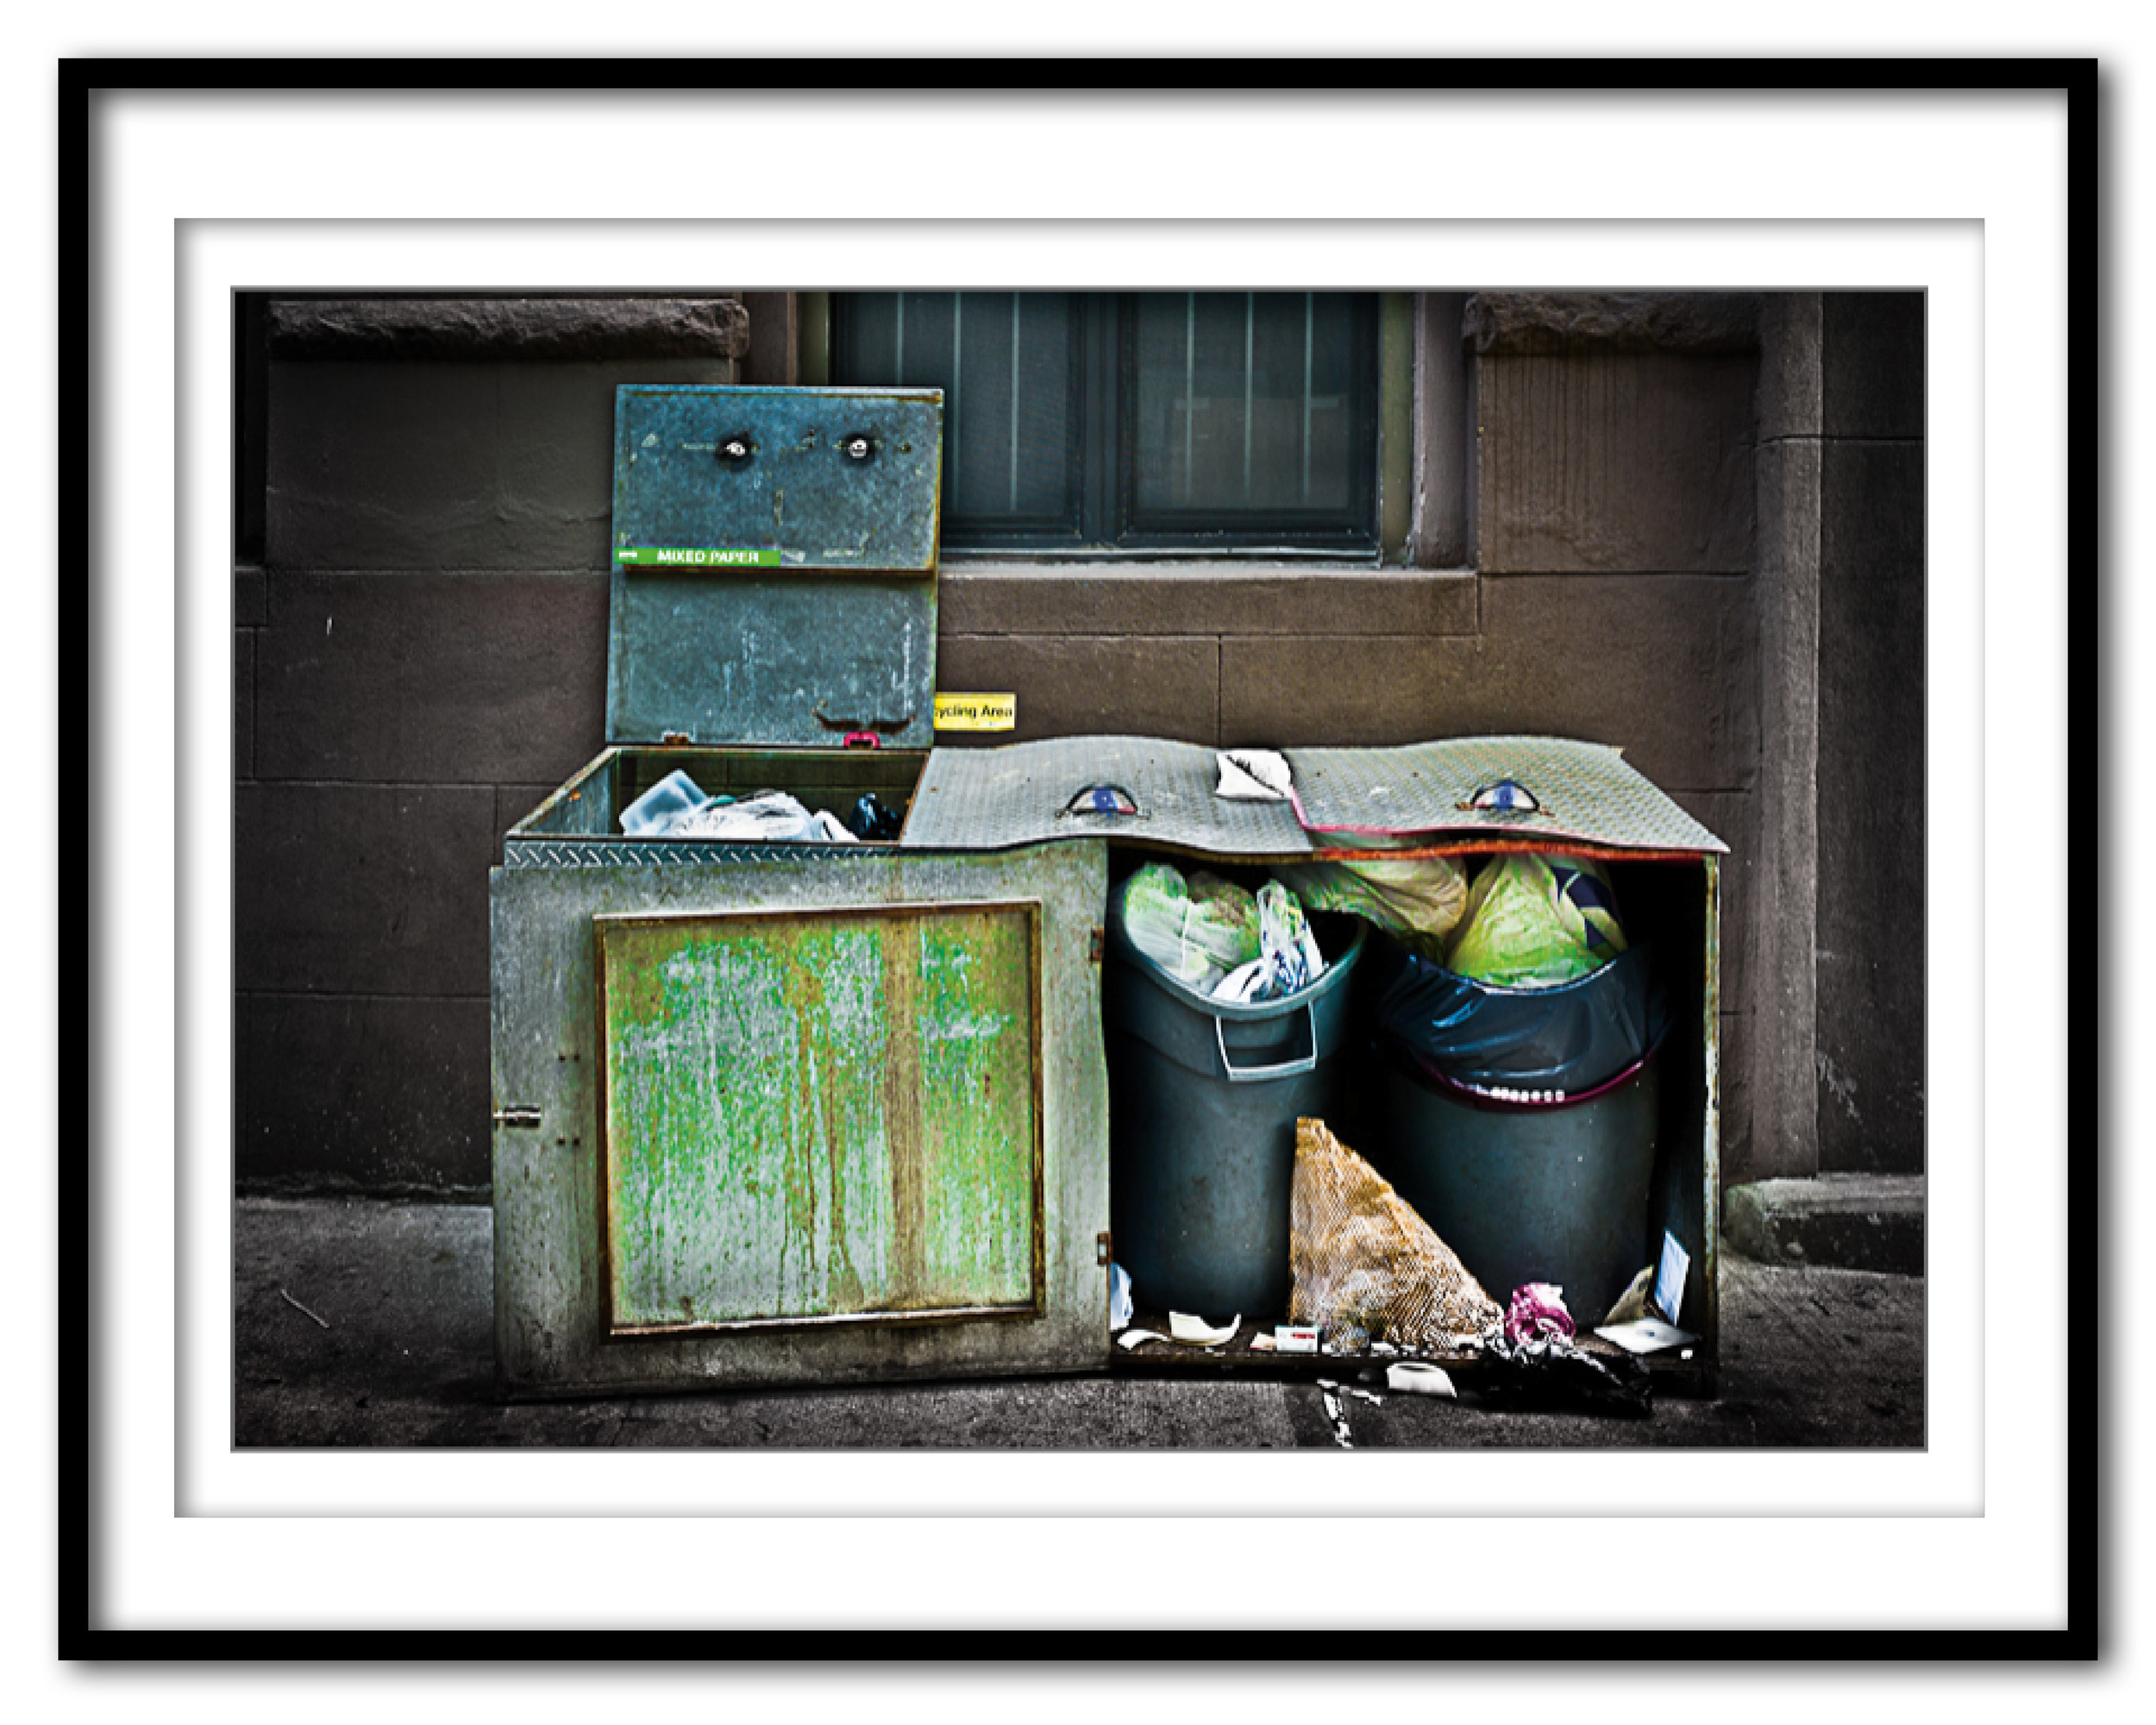 Trashed Trash Bins Mystery #2 - 5.30.16 - Framed.jpg